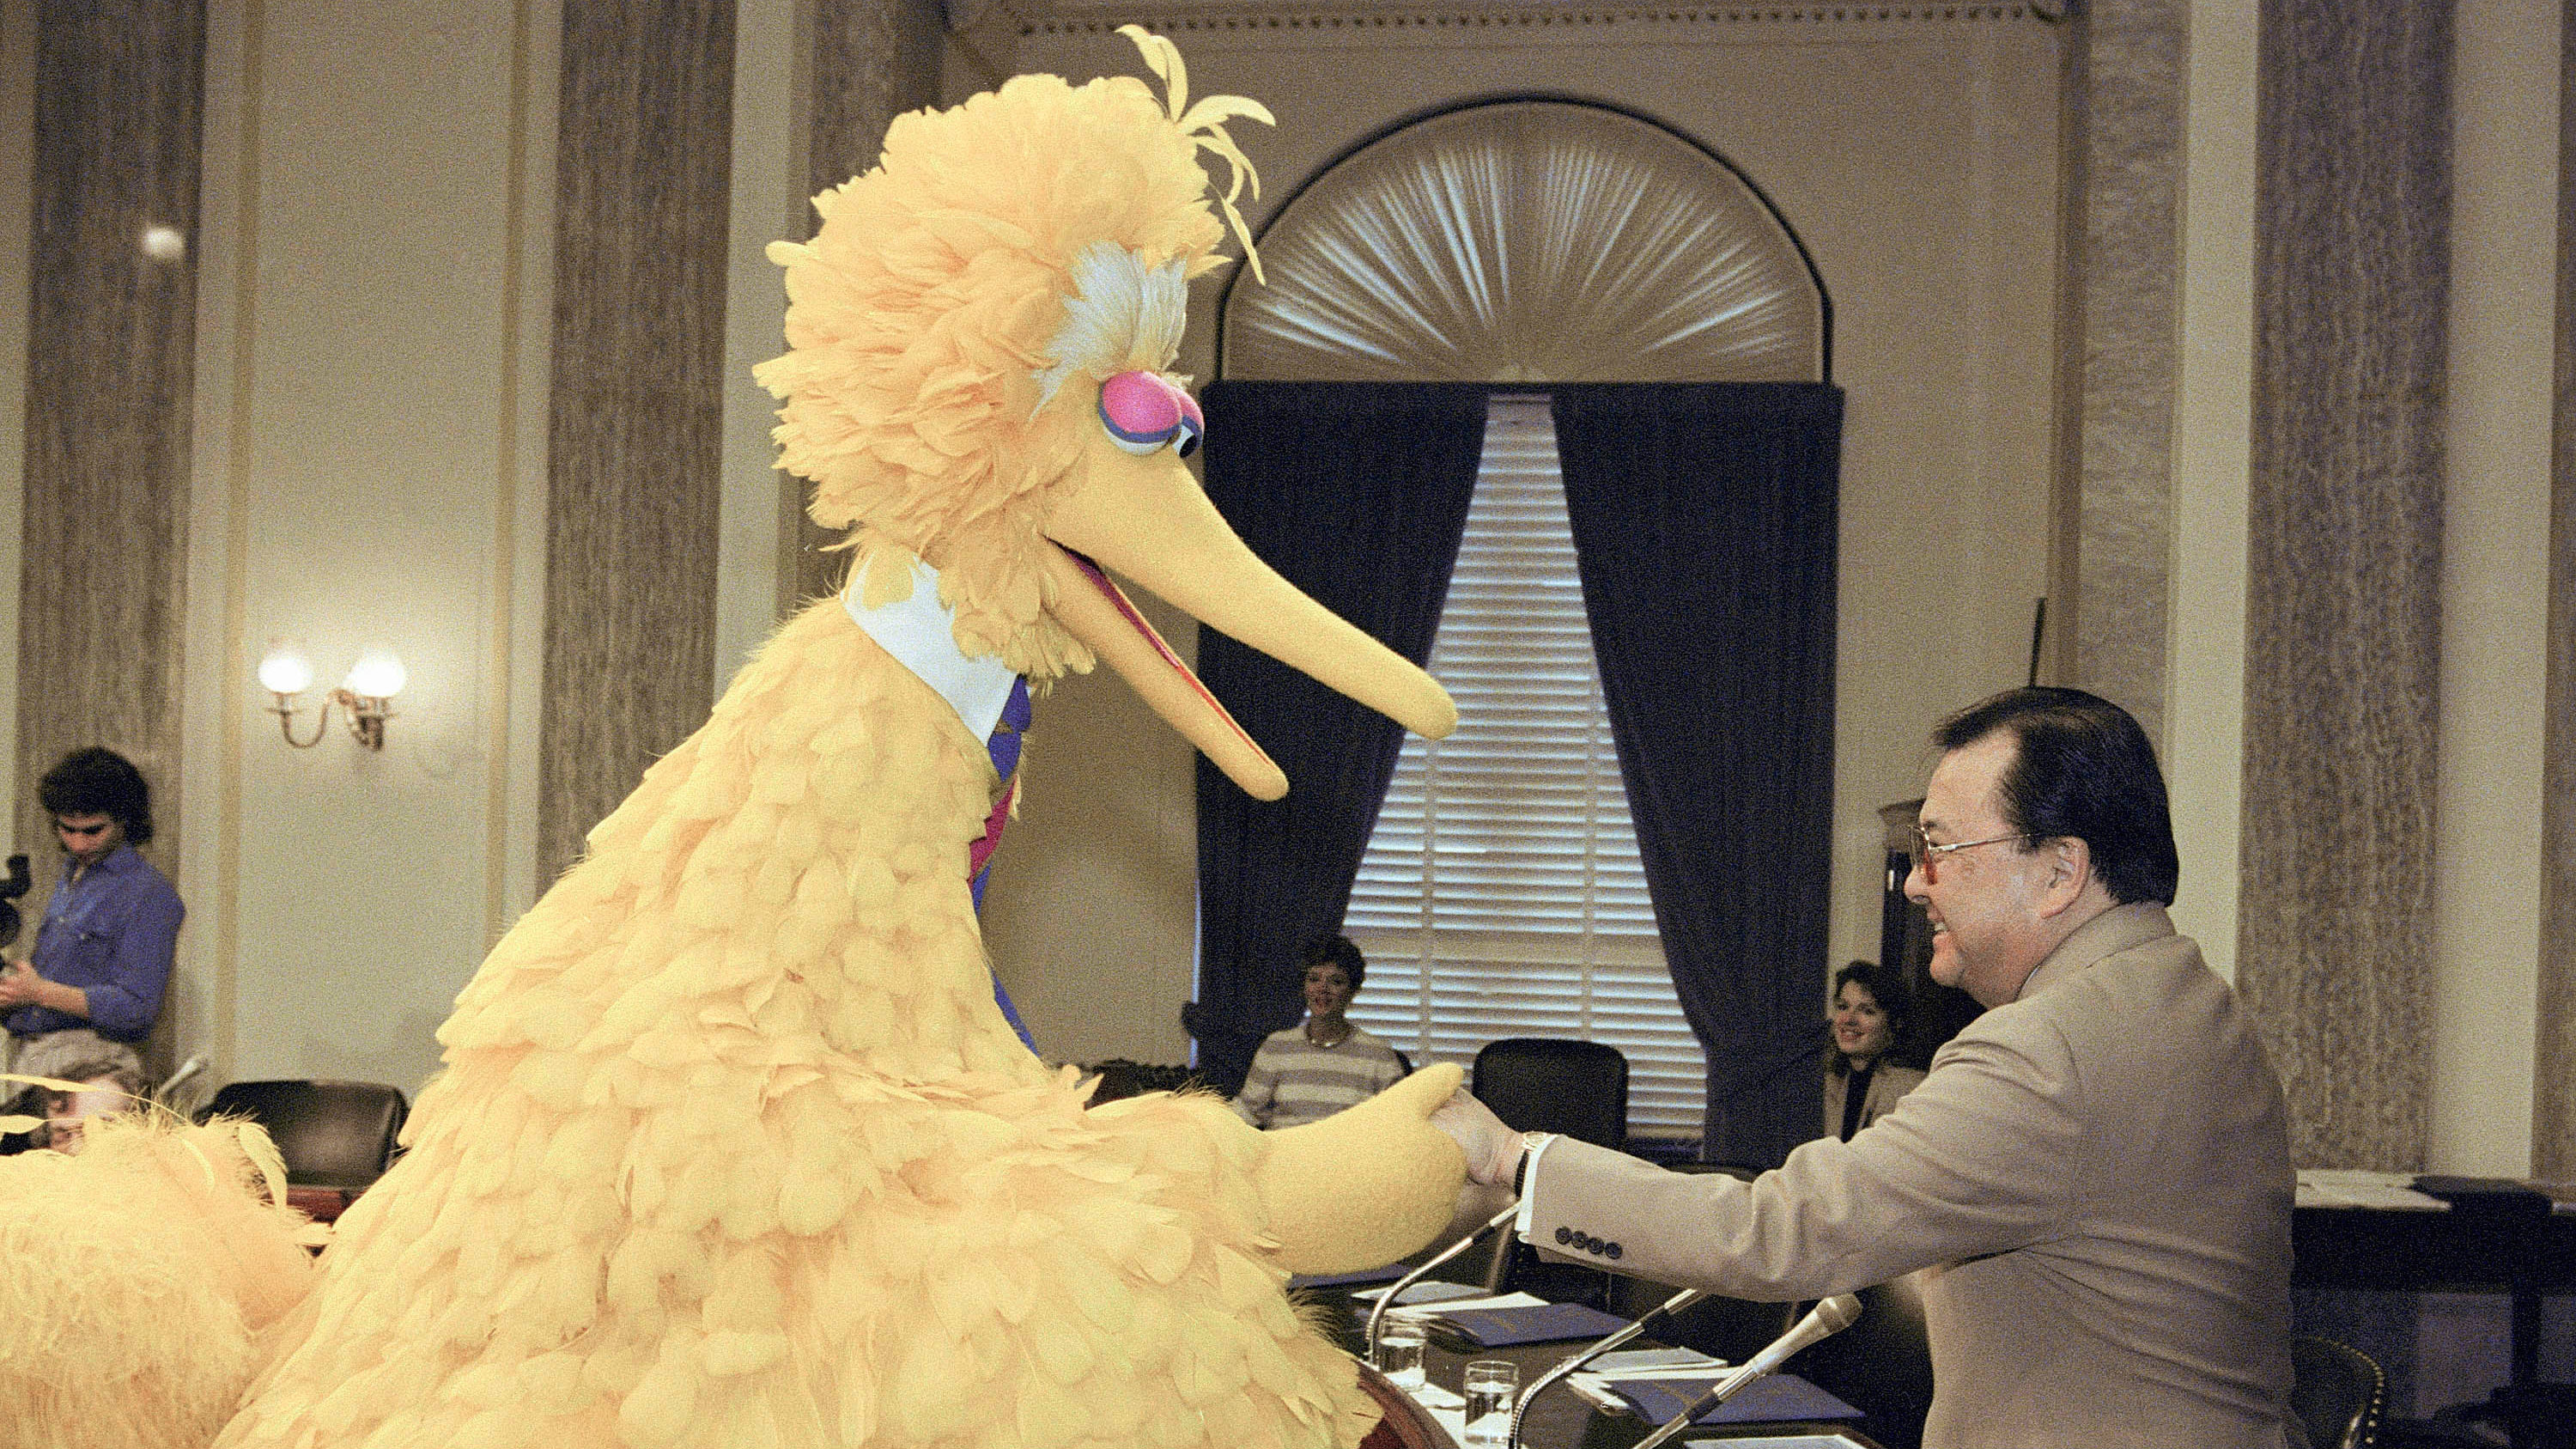 Big Bird, of the educational television show Sesame Street, shakes hands with Sen. Daniel Inouye, D-Hawaii, chairman of the Senate Commerce Science and Transportation Communications subcommittee on Capitol Hill in Washington, on April 12, 1989. The subcommittee is holding hearings on competitiveness in educational children's television. (AP Photo/John Duricka)